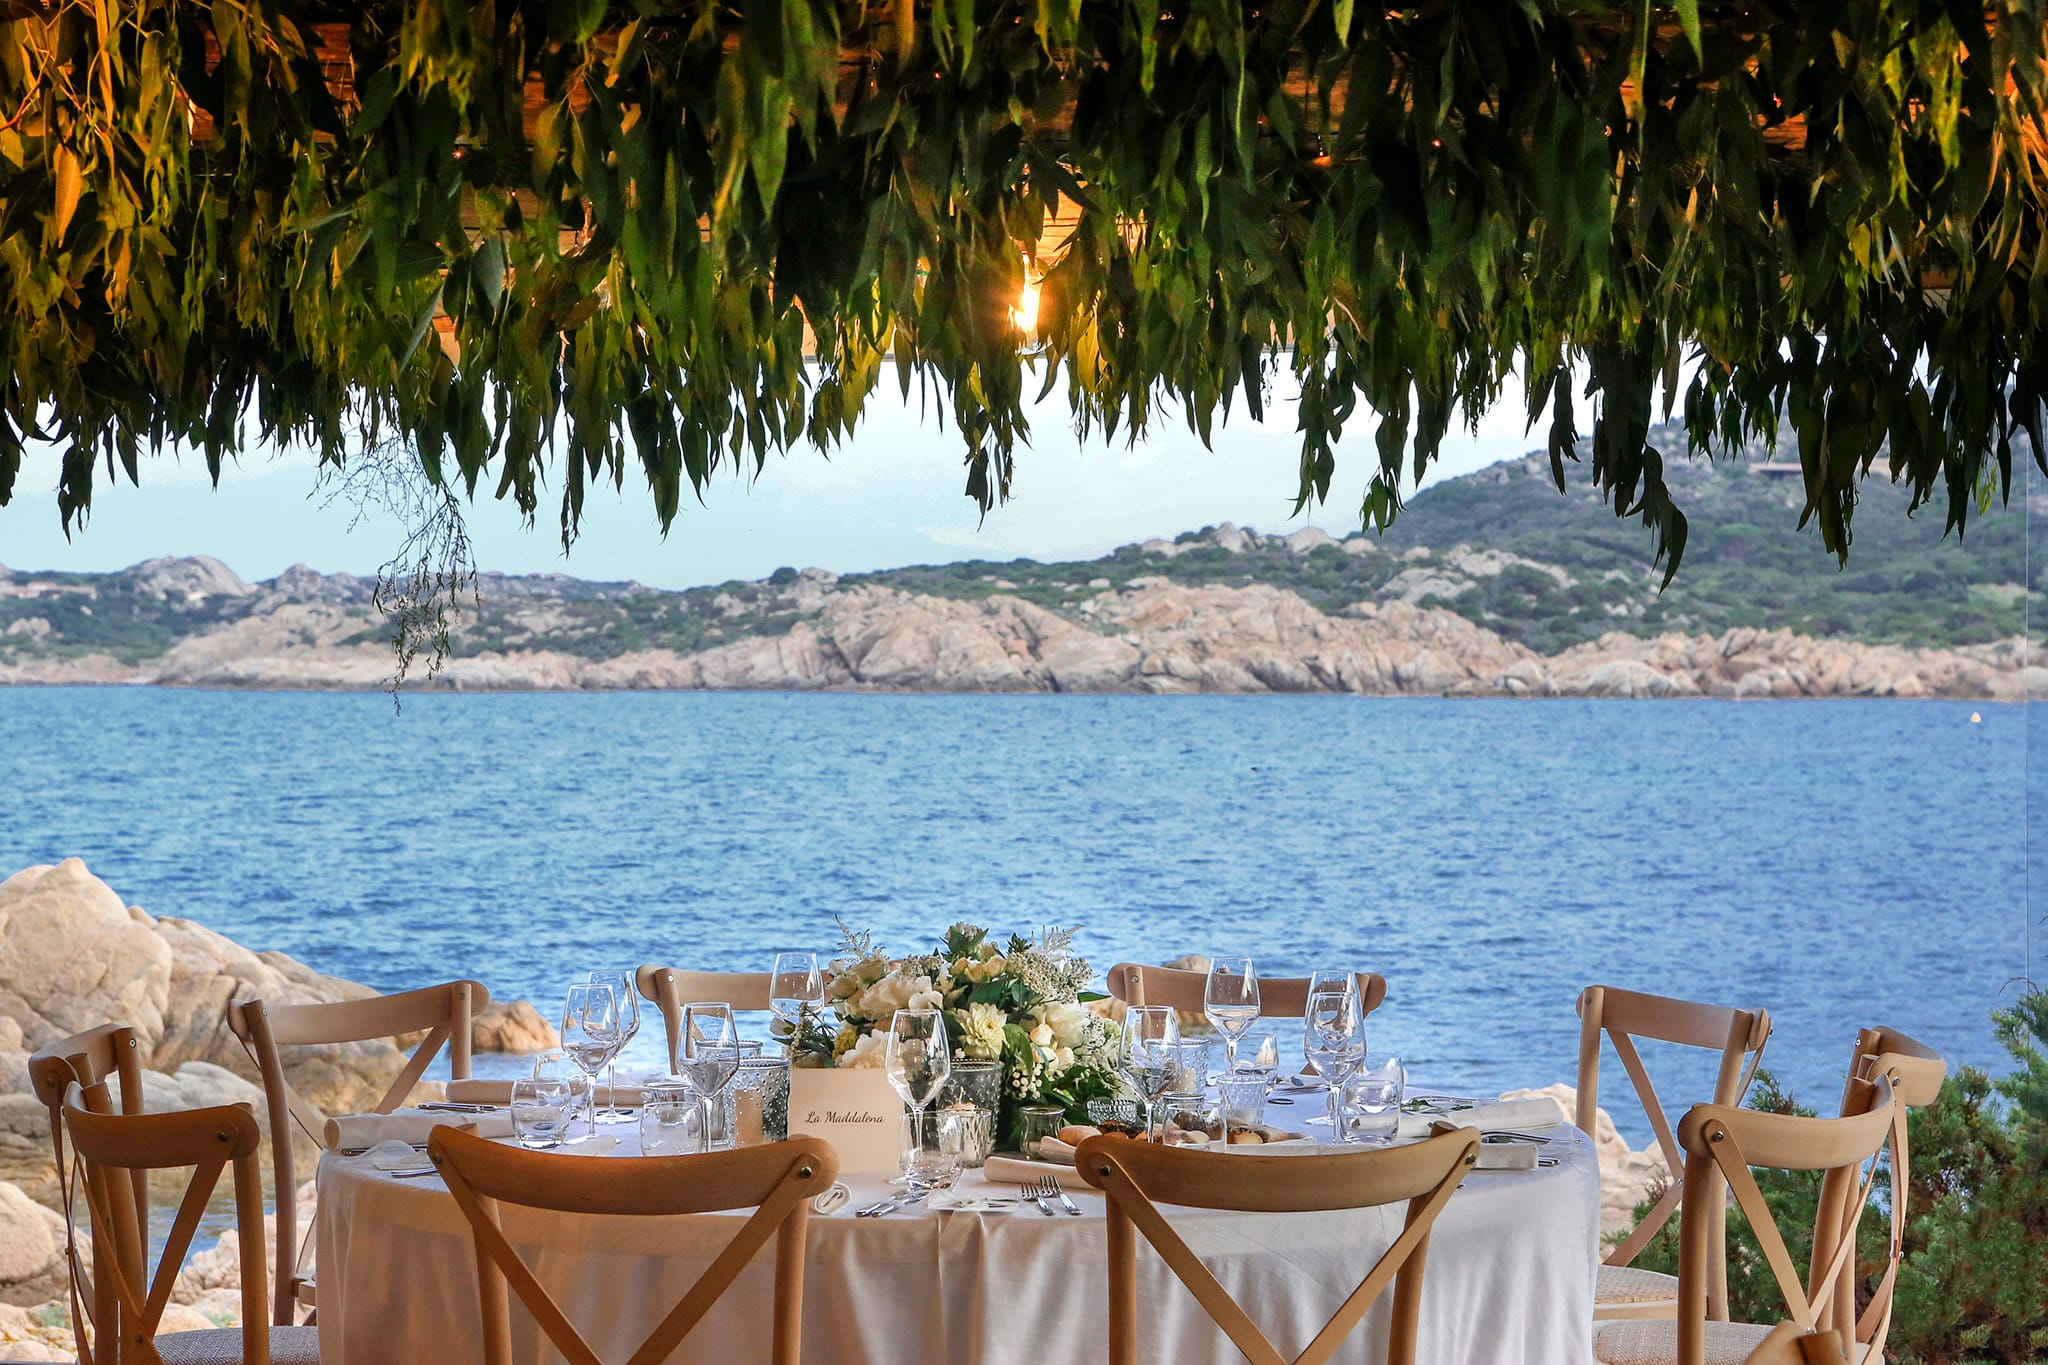 Agustina and Gianluca, wedding dinner with sea view